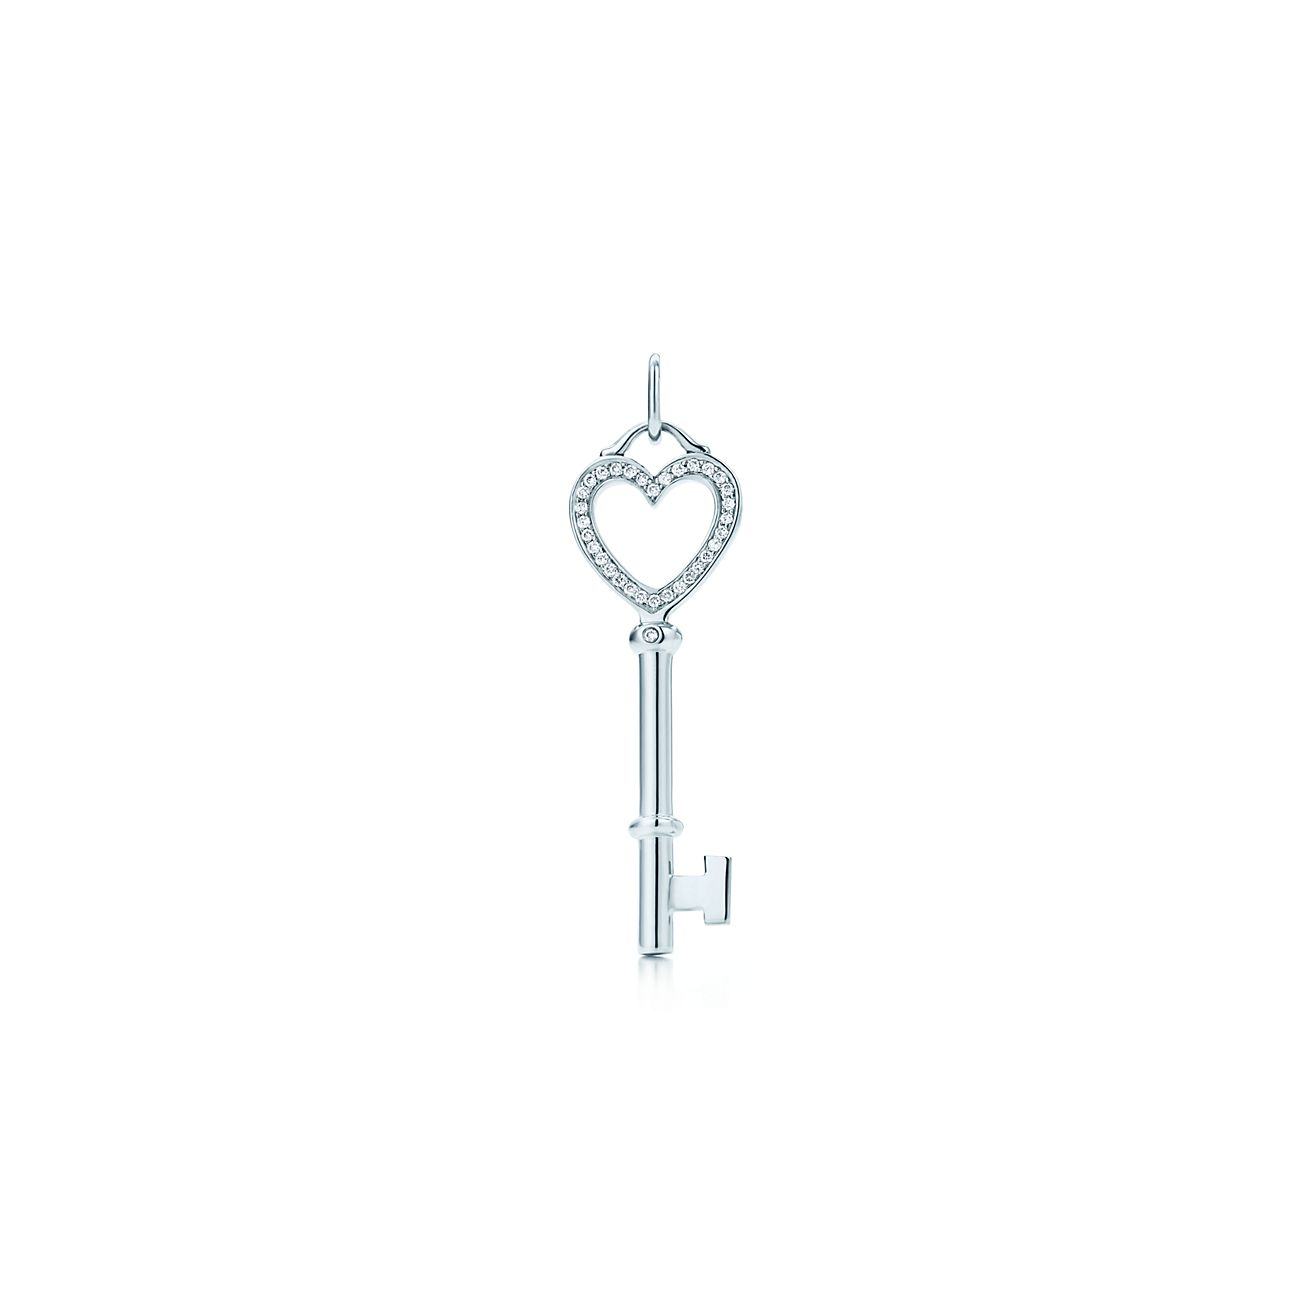 Tiffany keys heart key pendant in 18k white gold with diamonds tiffany keysheart key pendant aloadofball Image collections